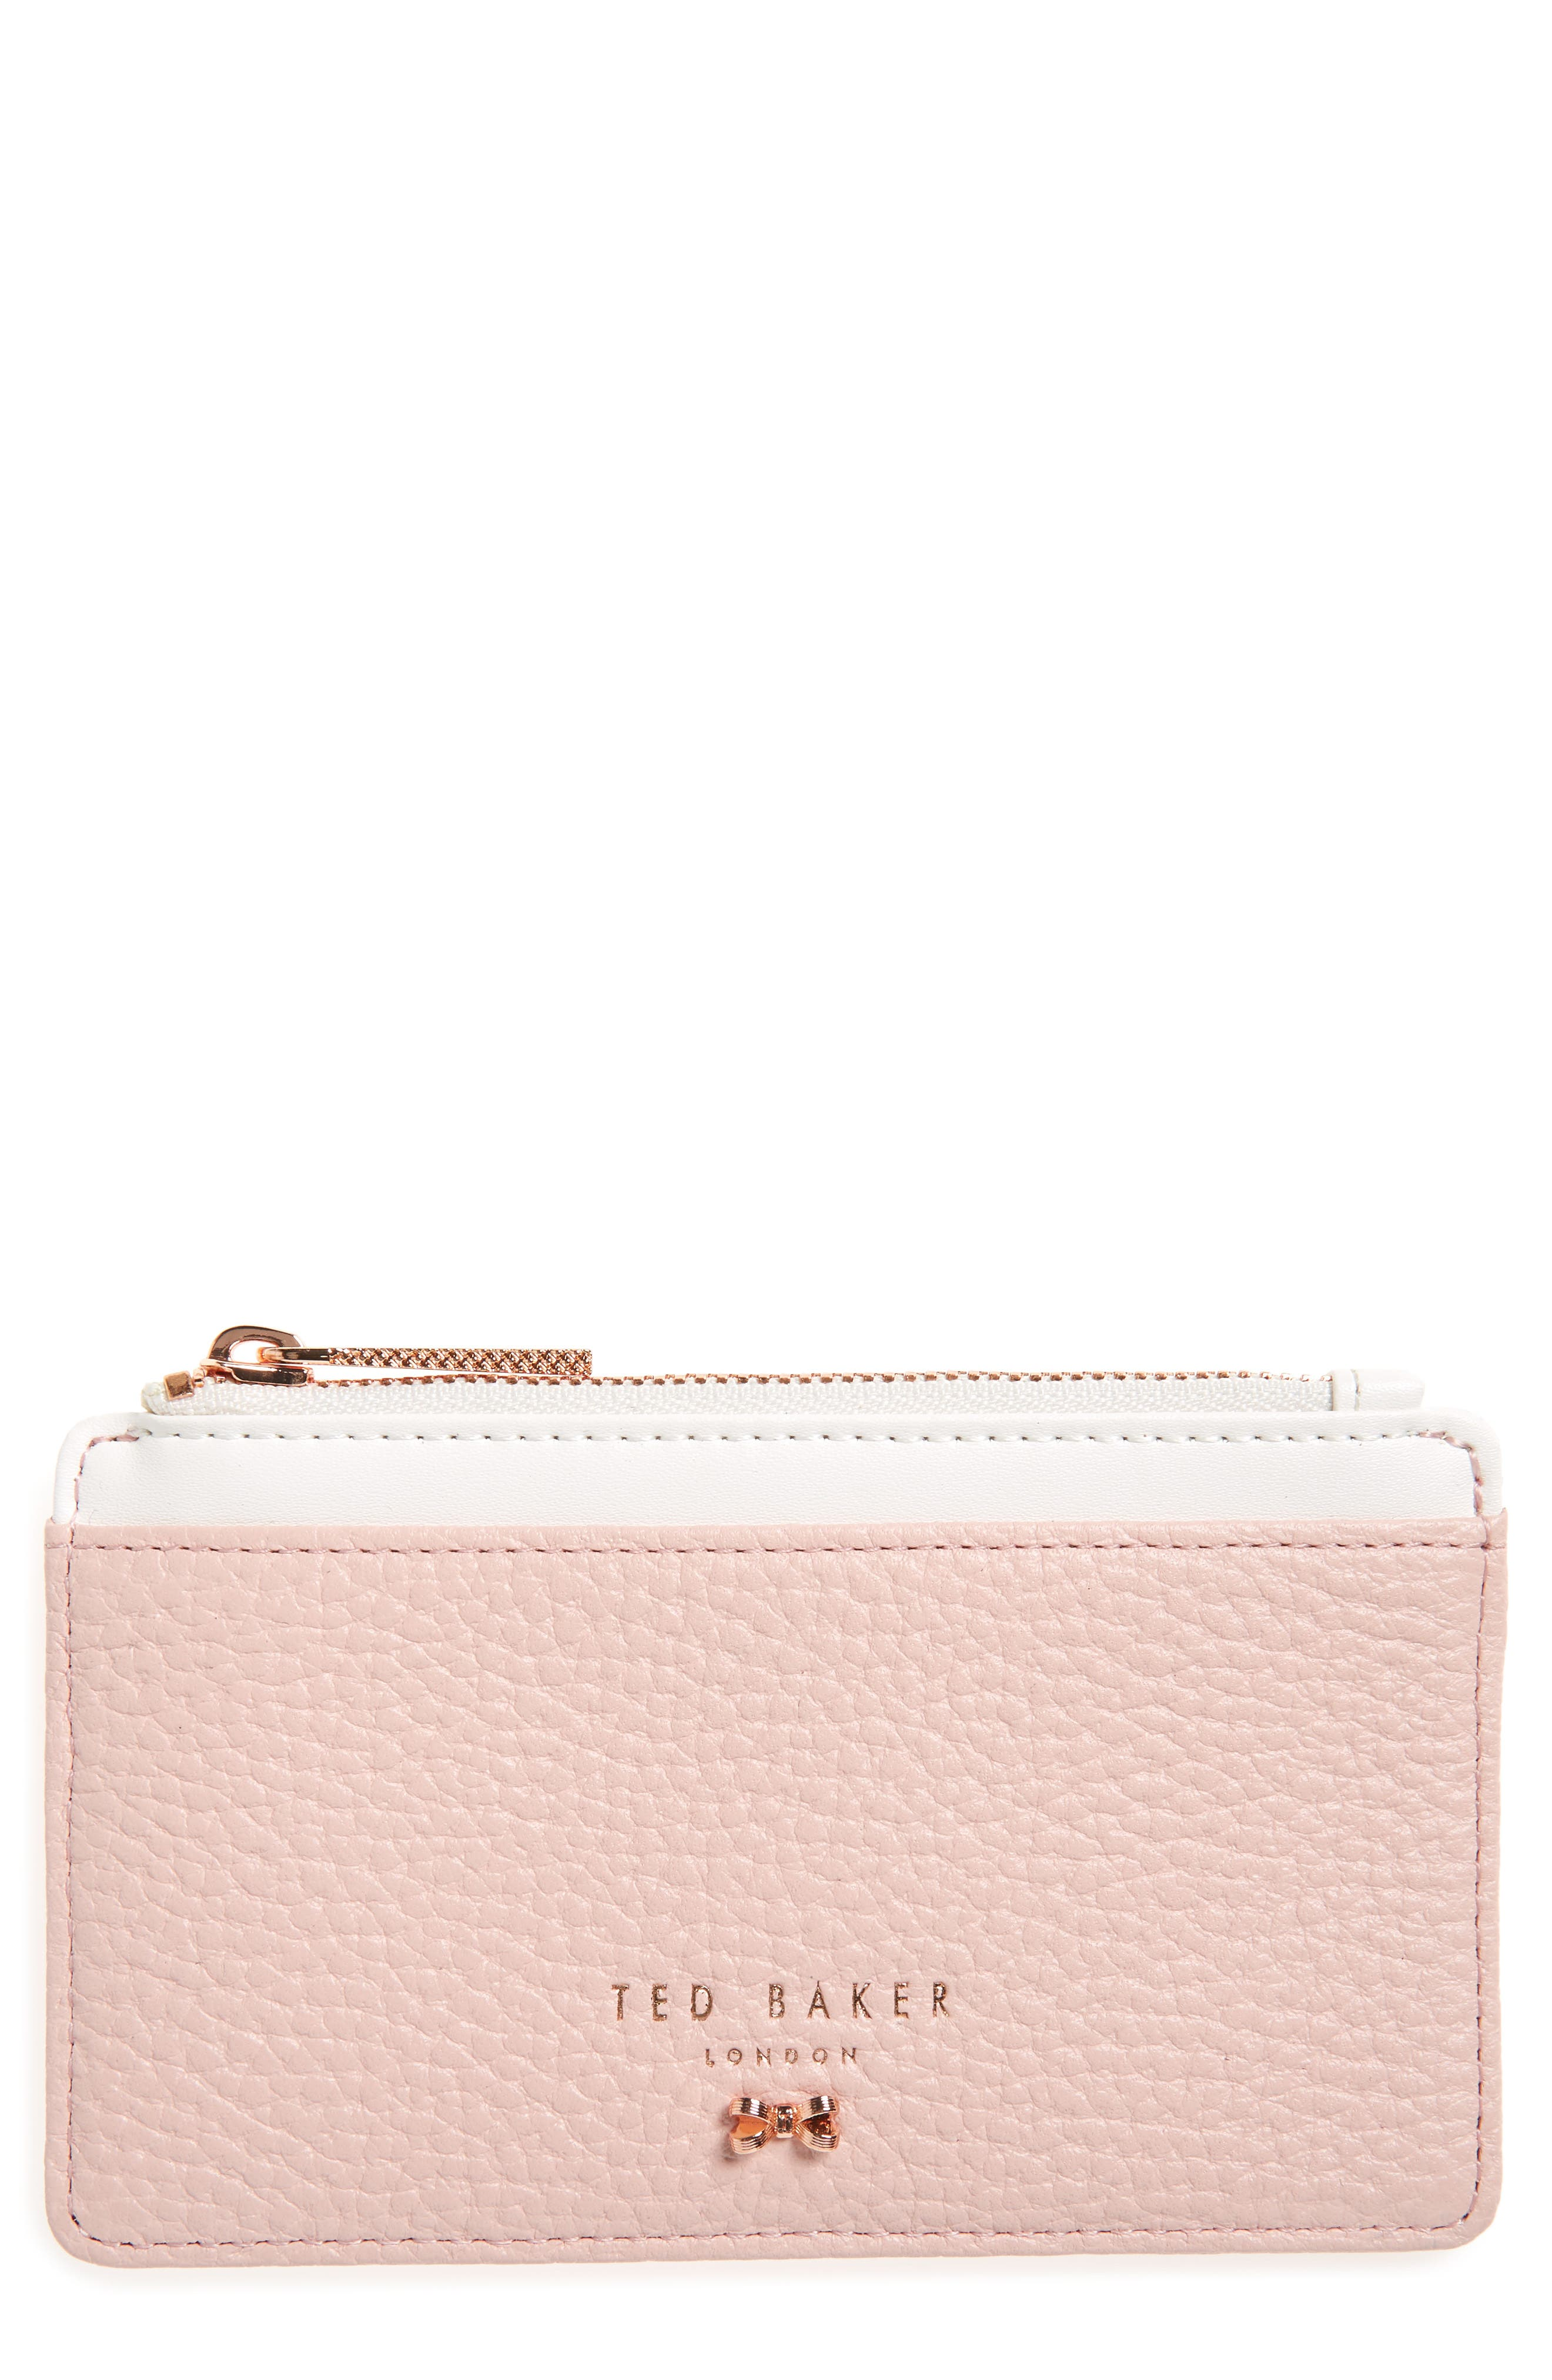 Zip Leather Card Holder,                             Main thumbnail 1, color,                             LIGHT PINK